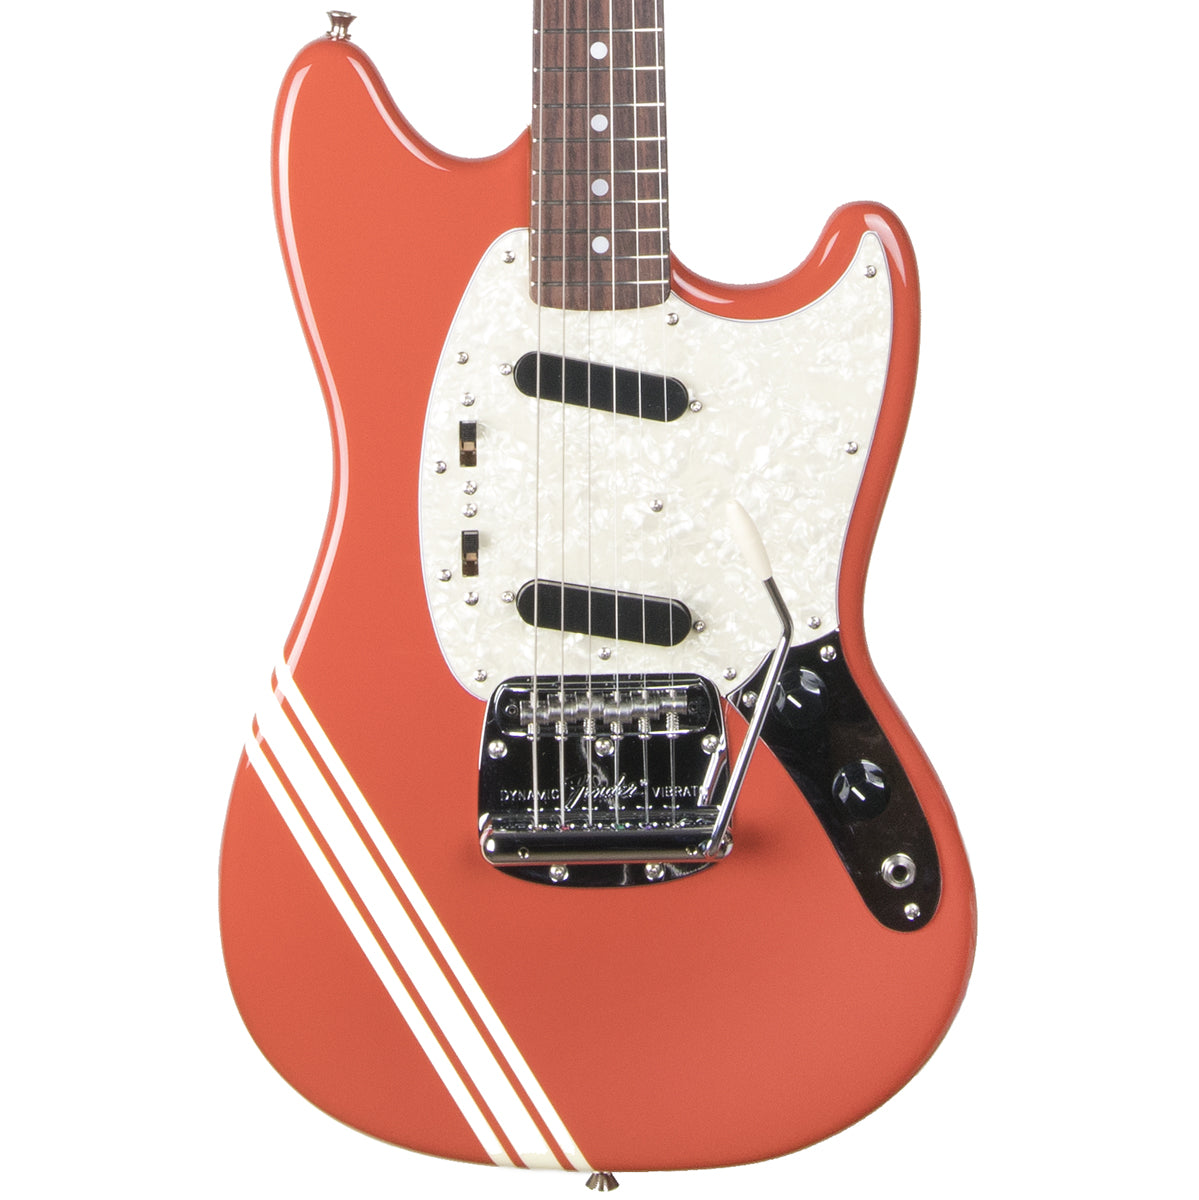 2012 Fender Japan '73 Mustang MG73-CO, Fiesta Red, Competition Stripe